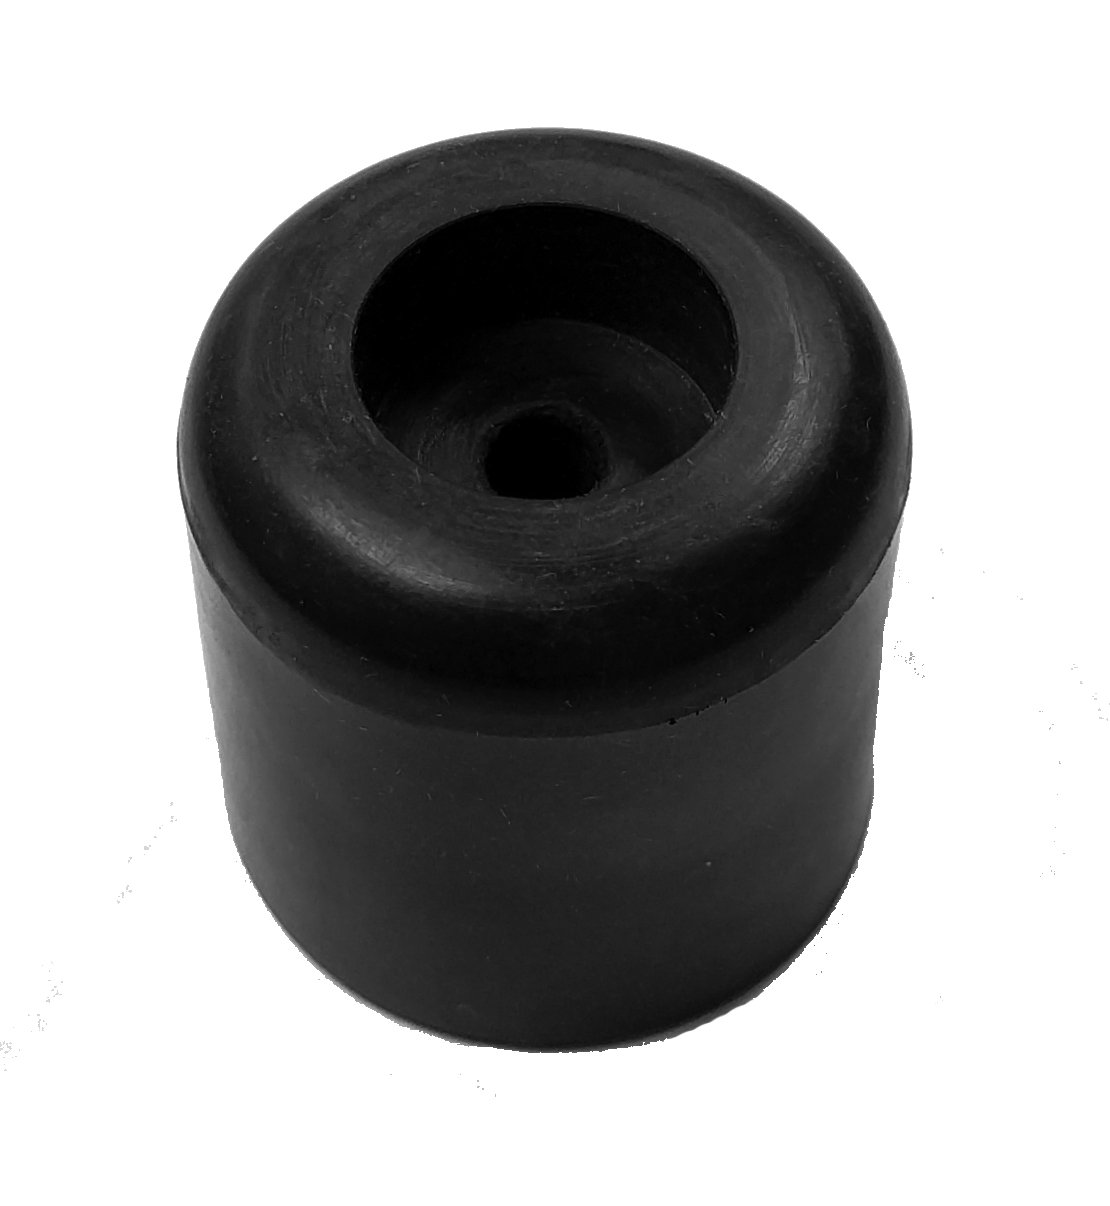 1-3//8 L x 1-1//14 OD x 5//16 ID Herco SCE41 Extra-Soft Closed Cell Neoprene Sponge Rubber Insulator 4 pcs